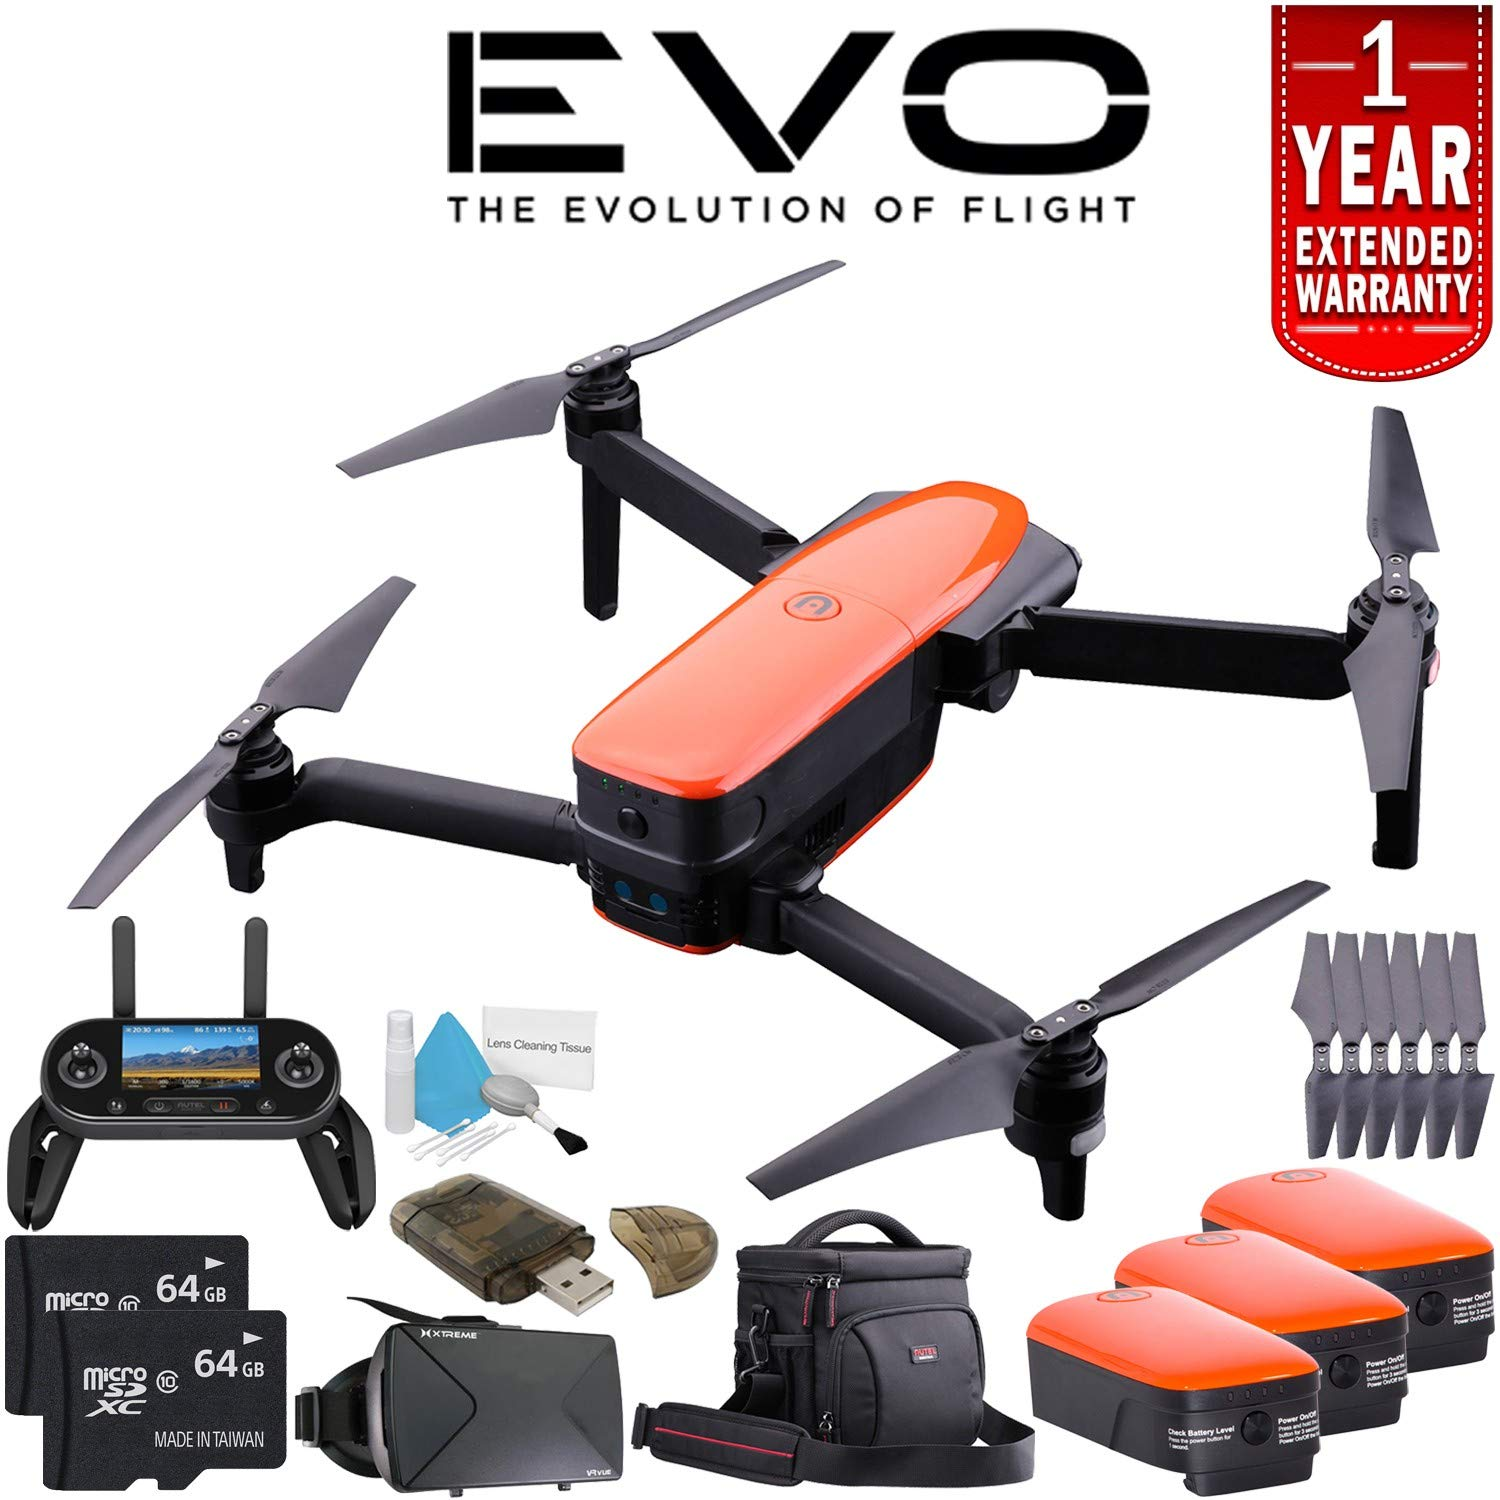 Autel Robotics EVO Quadcopter + Autel Robotics 4300mAh Intelligent LiPo Battery + Travel Bag for EVO + 64GB microSDXC + VR VUE: 3D Virtual Reality Viewer + Card Reader + Deluxe Cleaning Kit Bundle